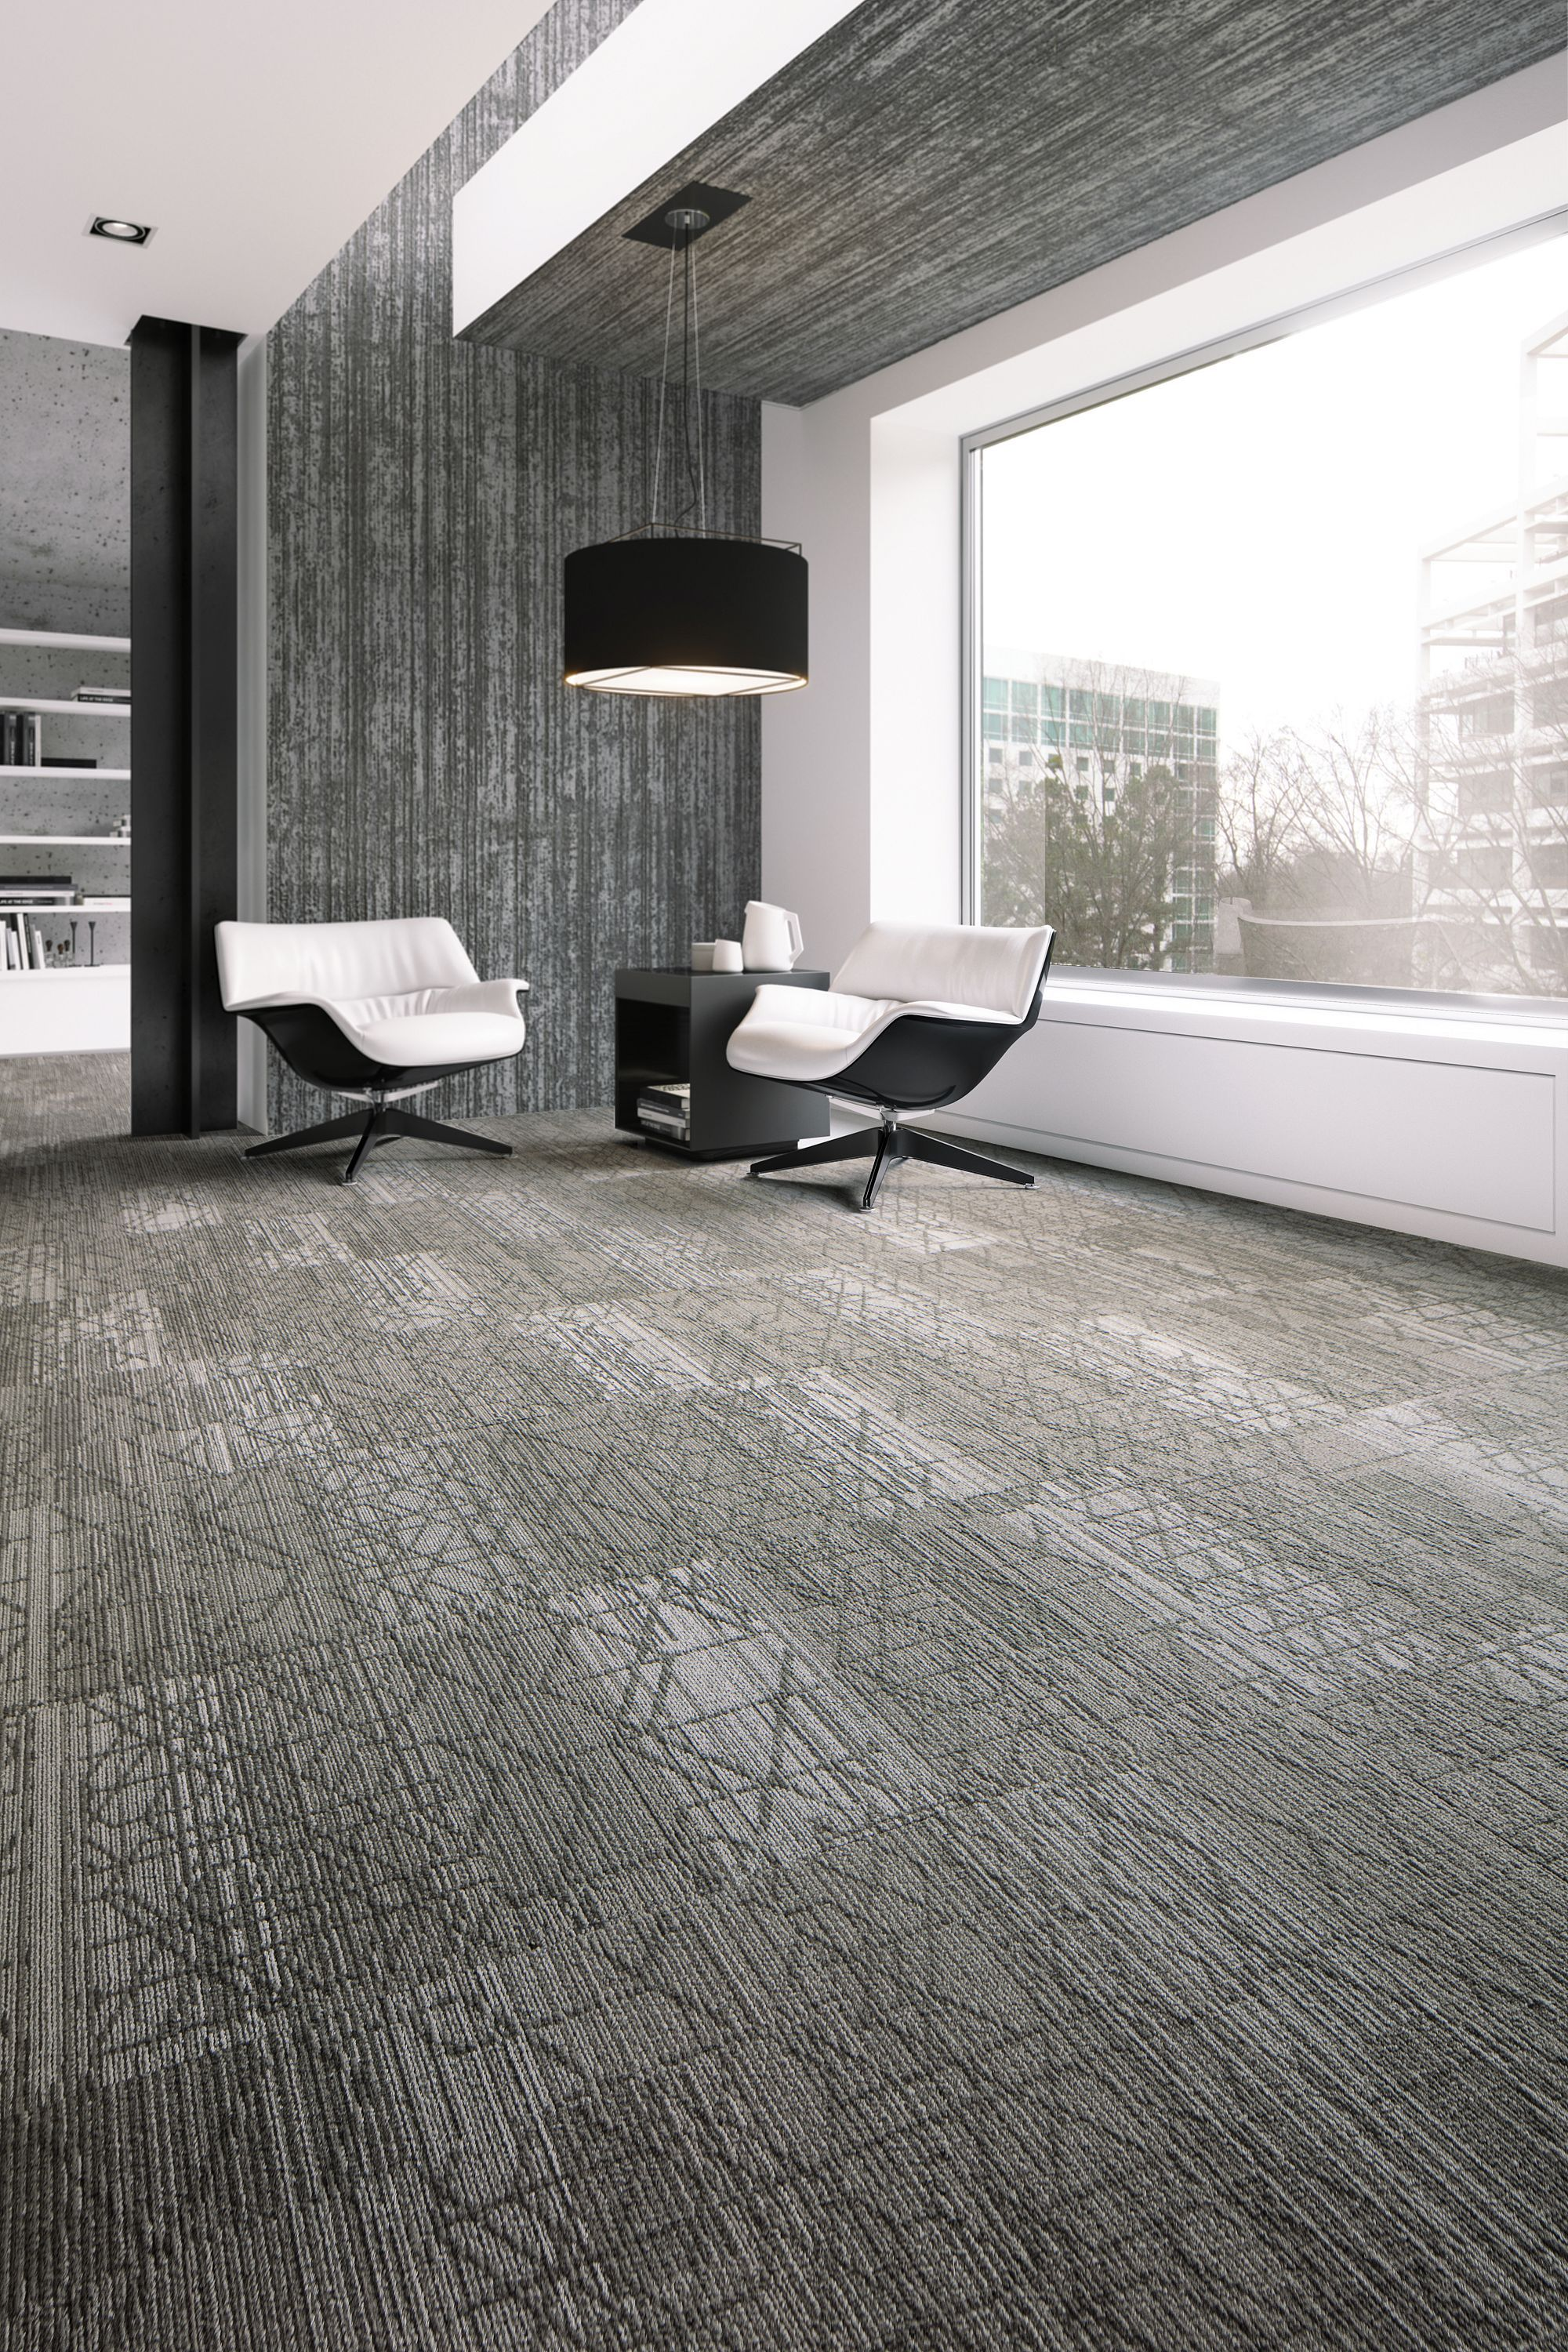 Mohawk Group Offers Both Hard And Soft Performance Flooring Solutions For All Commercial Environments Mohawk Group Home Decor Carpet Tiles